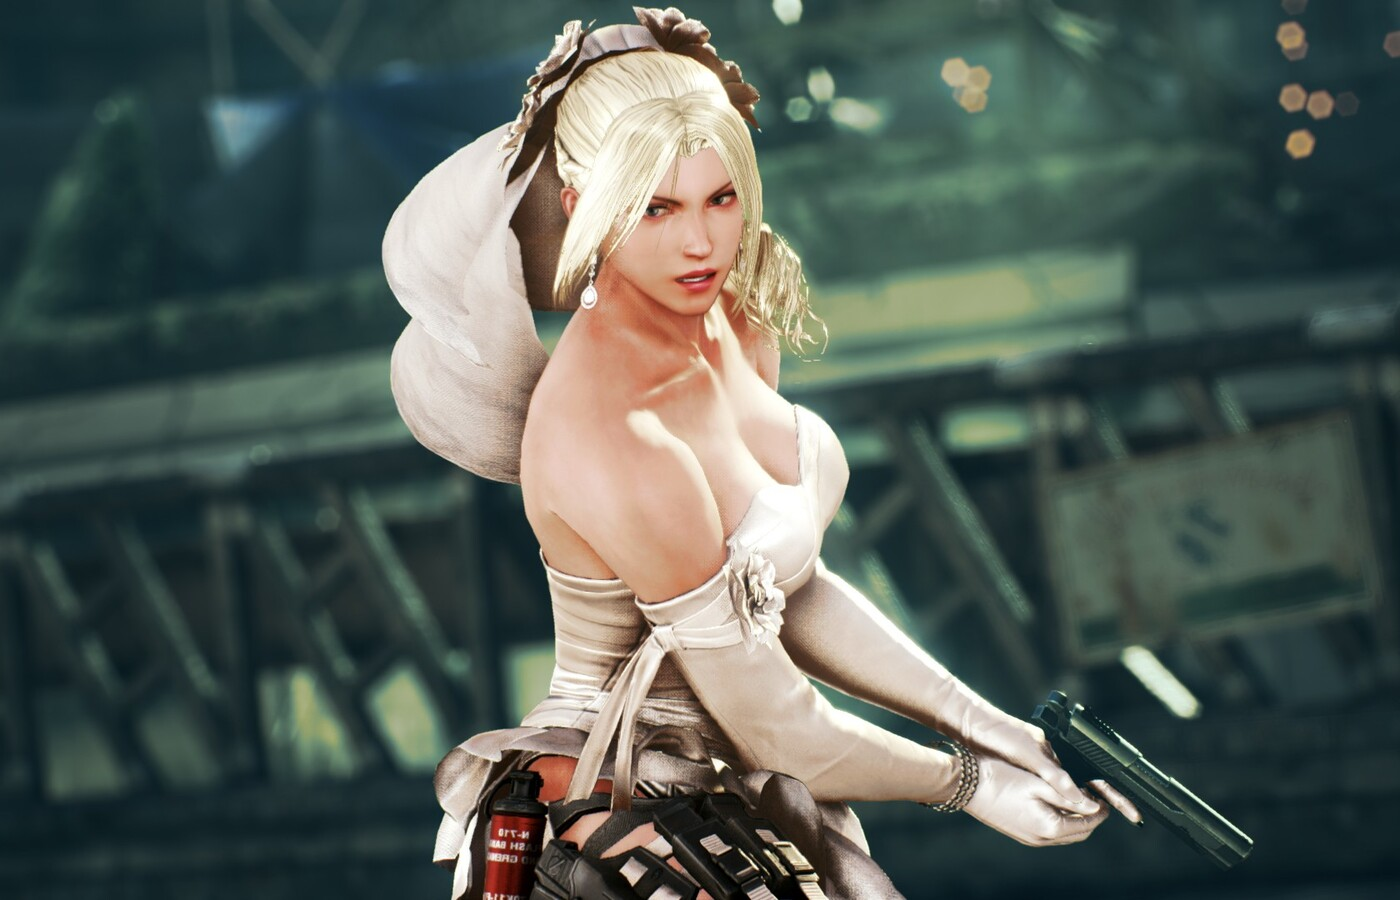 nina-williams-in-tekken-7.jpg